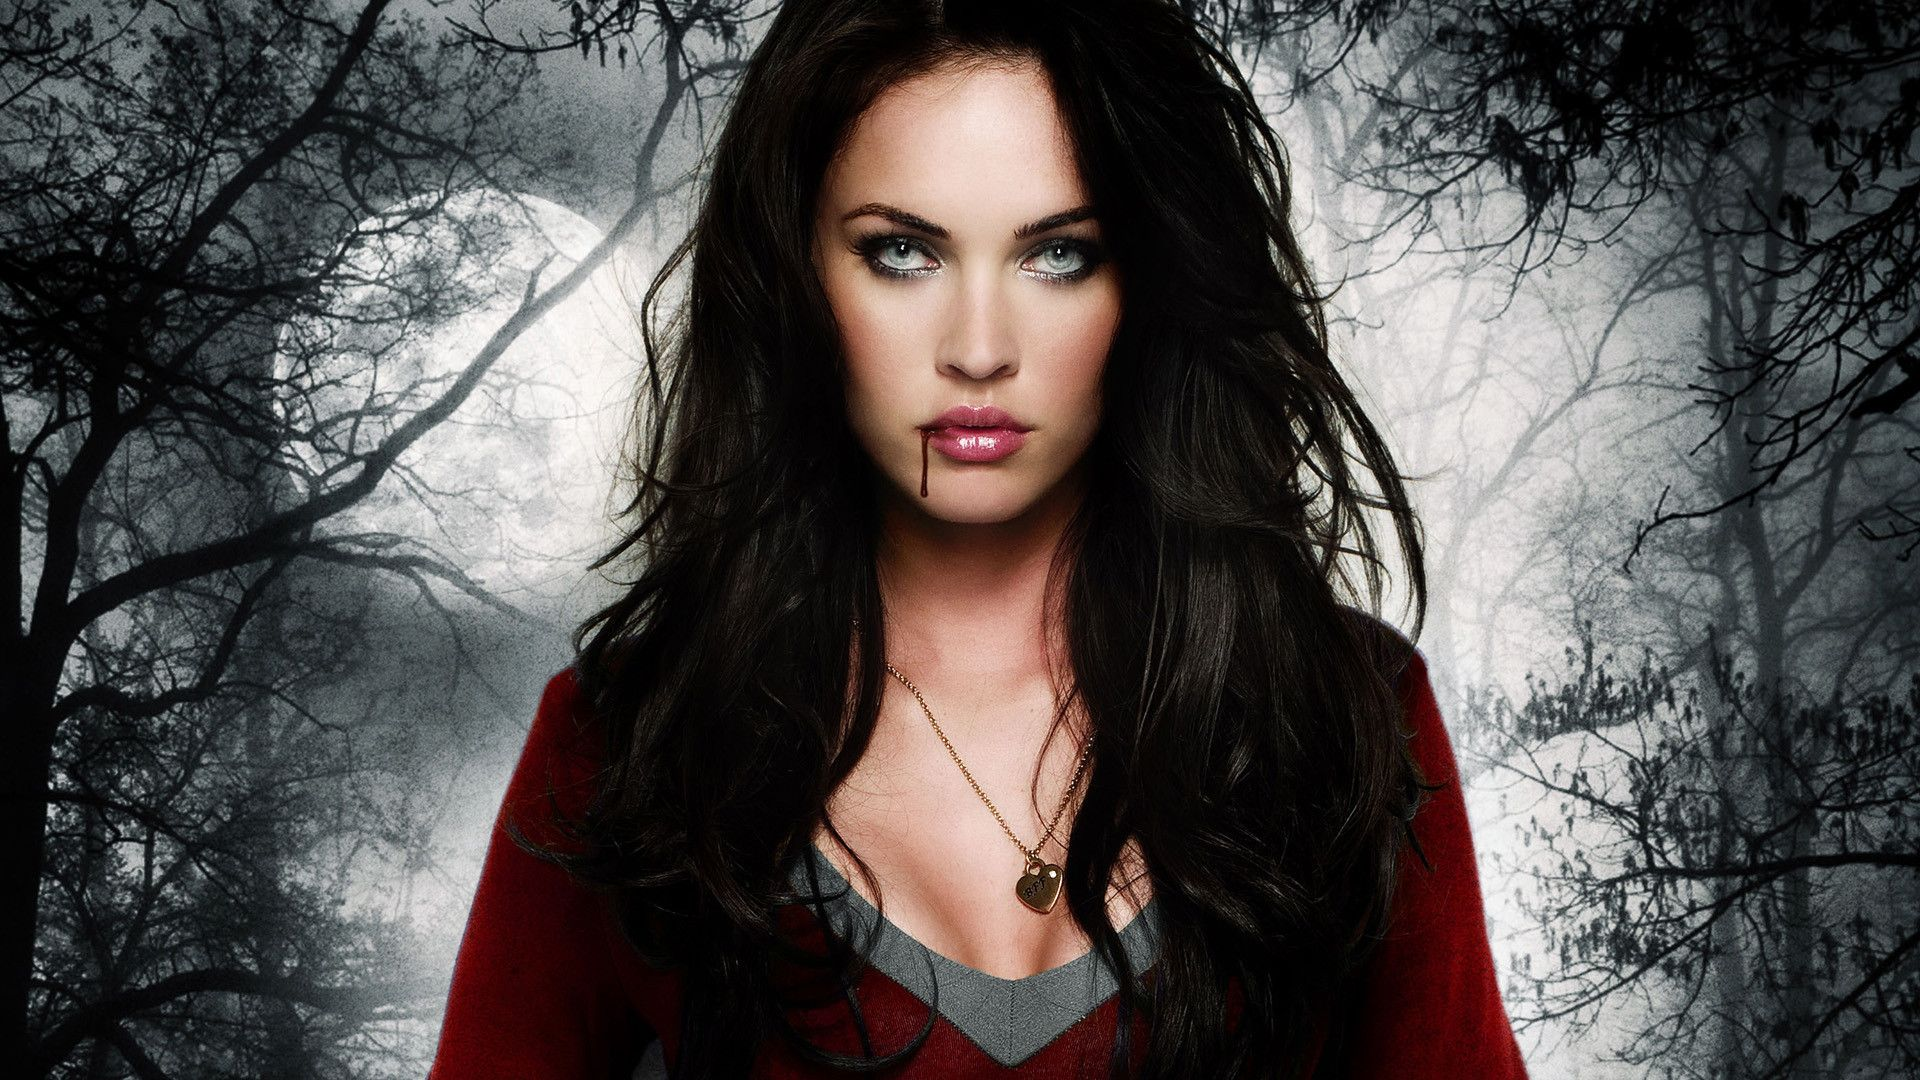 Hd wallpaper ladies - Best 25 Megan Fox Hd Wallpapers Ideas On Pinterest Megan Fox Hd Megan Fox Wedding And Megan Fox No Makeup